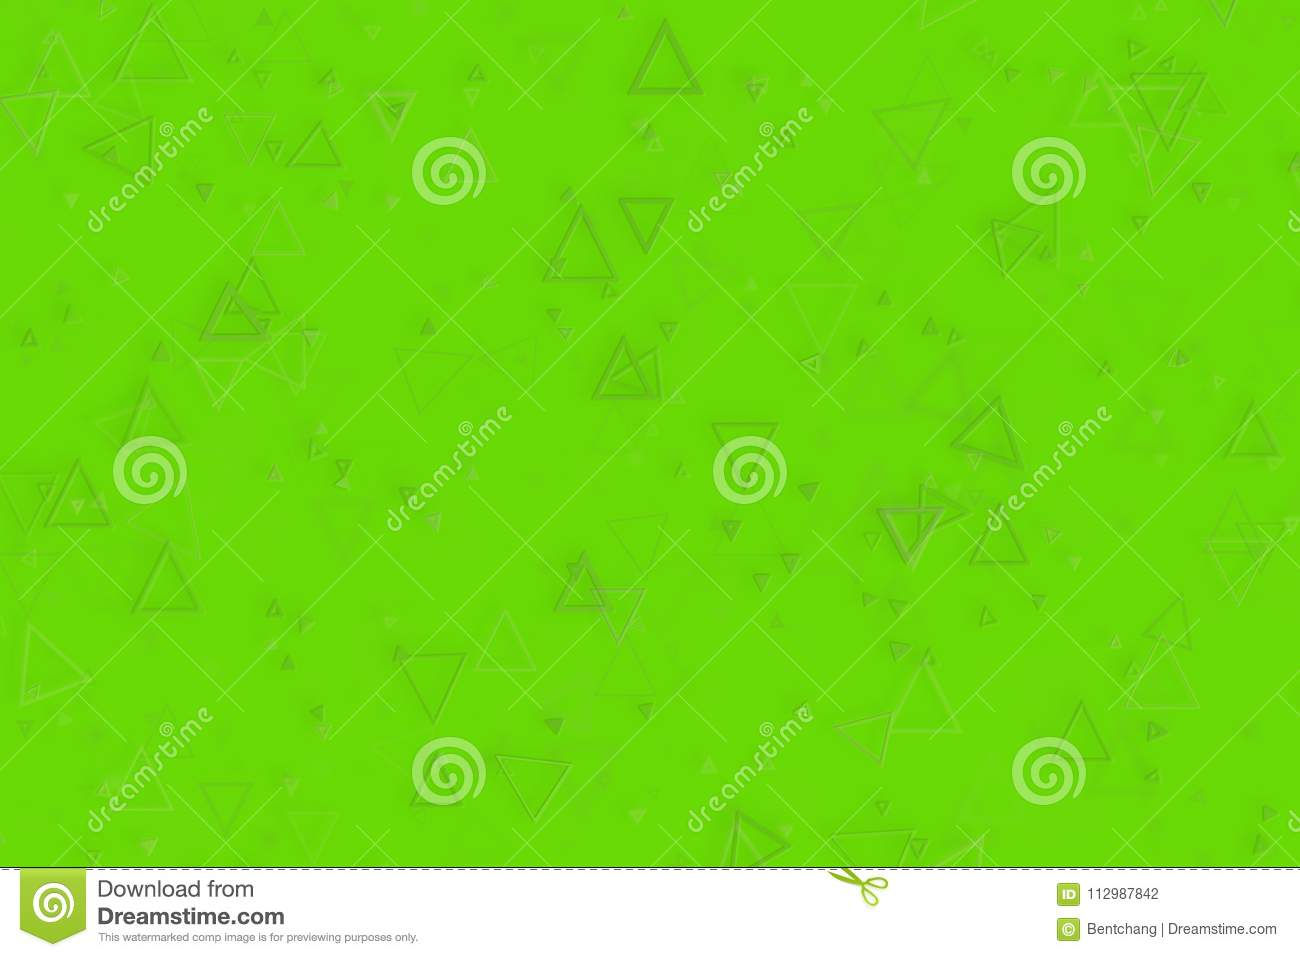 Abstract background with shape. Pattern, effect, surface, template & digital.